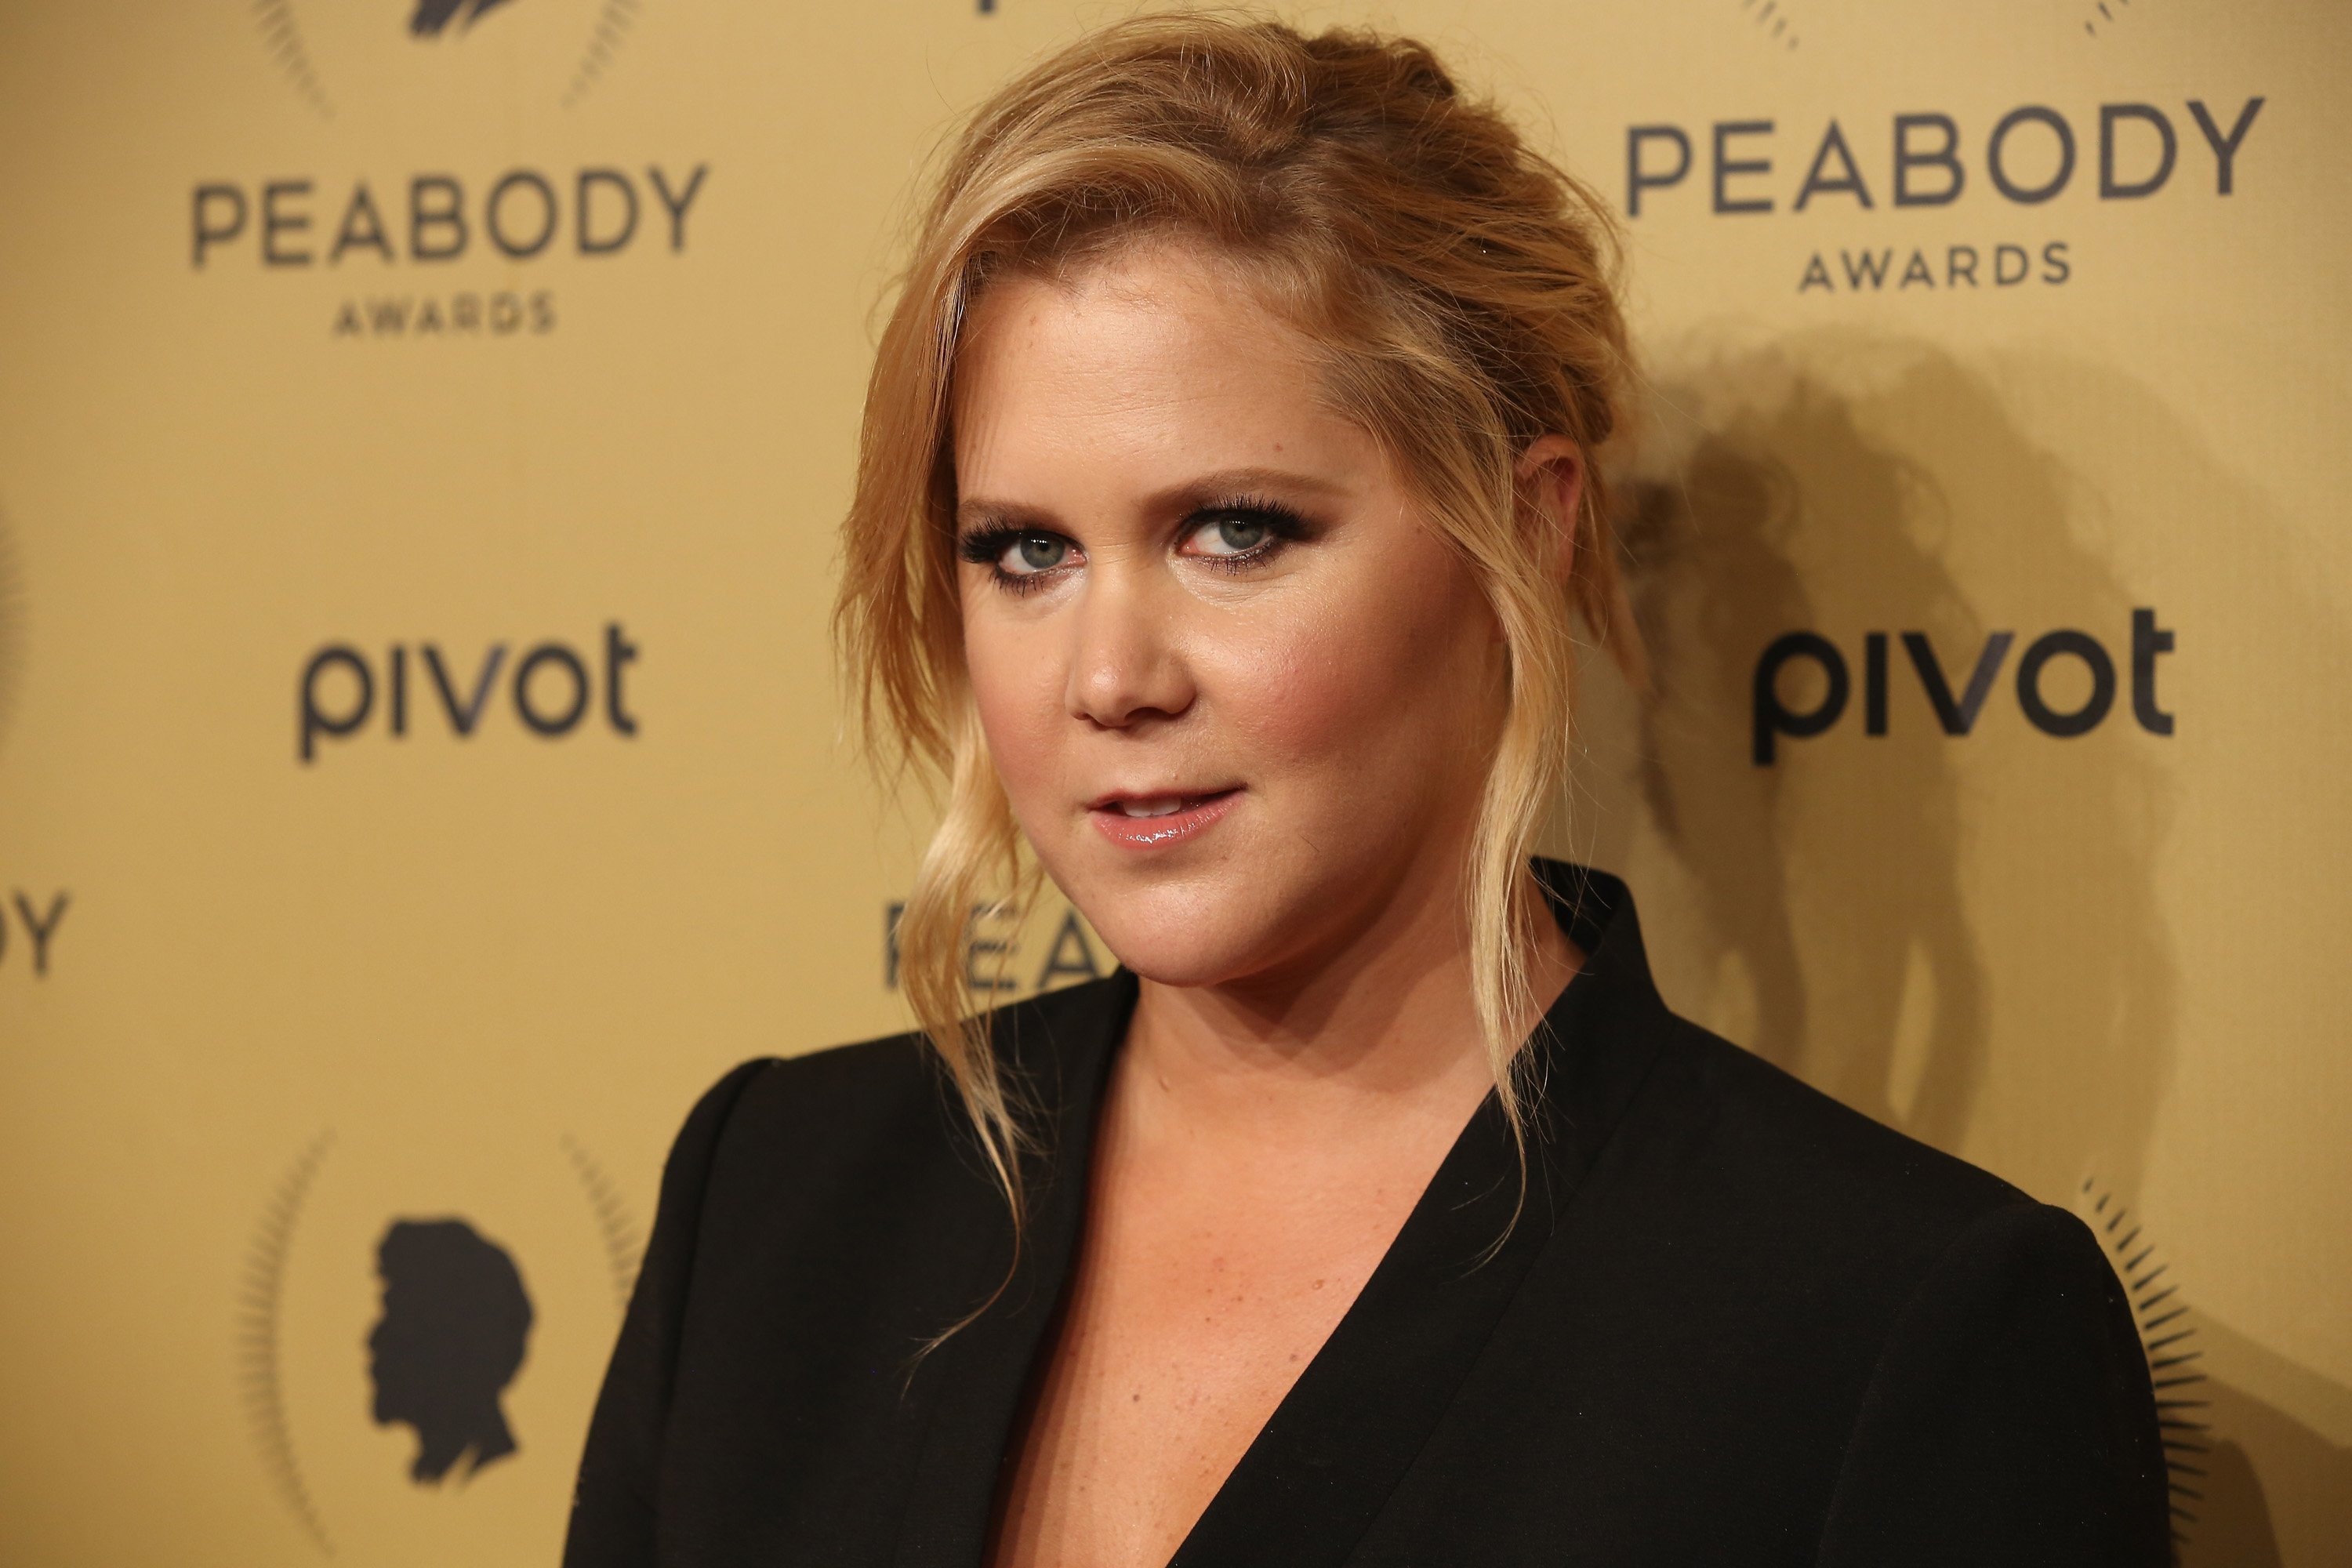 Amy Schumer attends The 74th Annual Peabody Awards Ceremony at Cipriani Wall Street on May 31, 2015 in New York City. | Photo: GettyImages